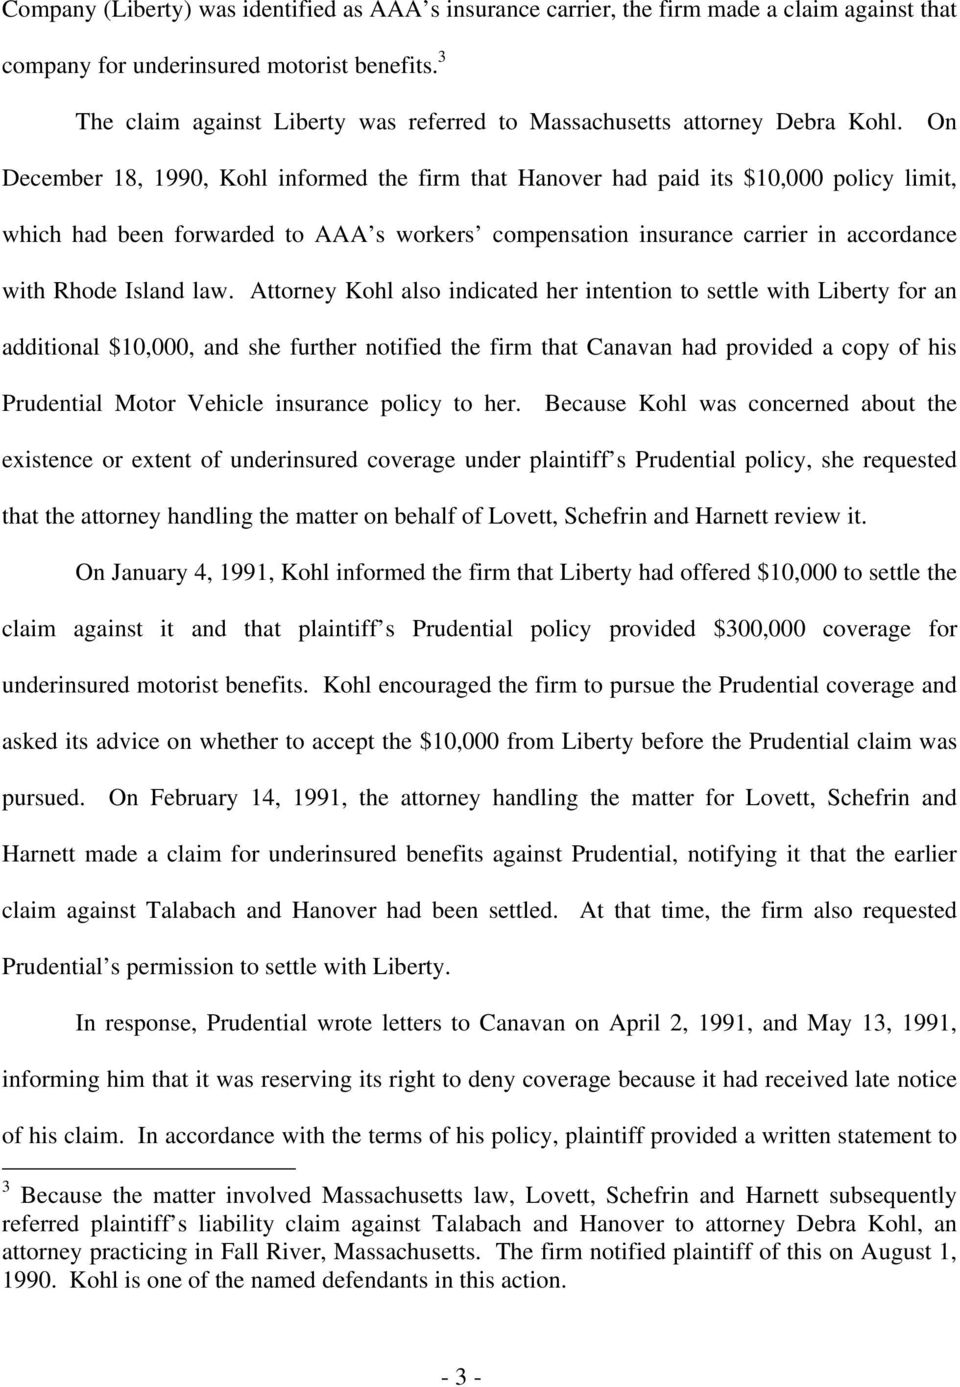 On December 18, 1990, Kohl informed the firm that Hanover had paid its $10,000 policy limit, which had been forwarded to AAA s workers compensation insurance carrier in accordance with Rhode Island